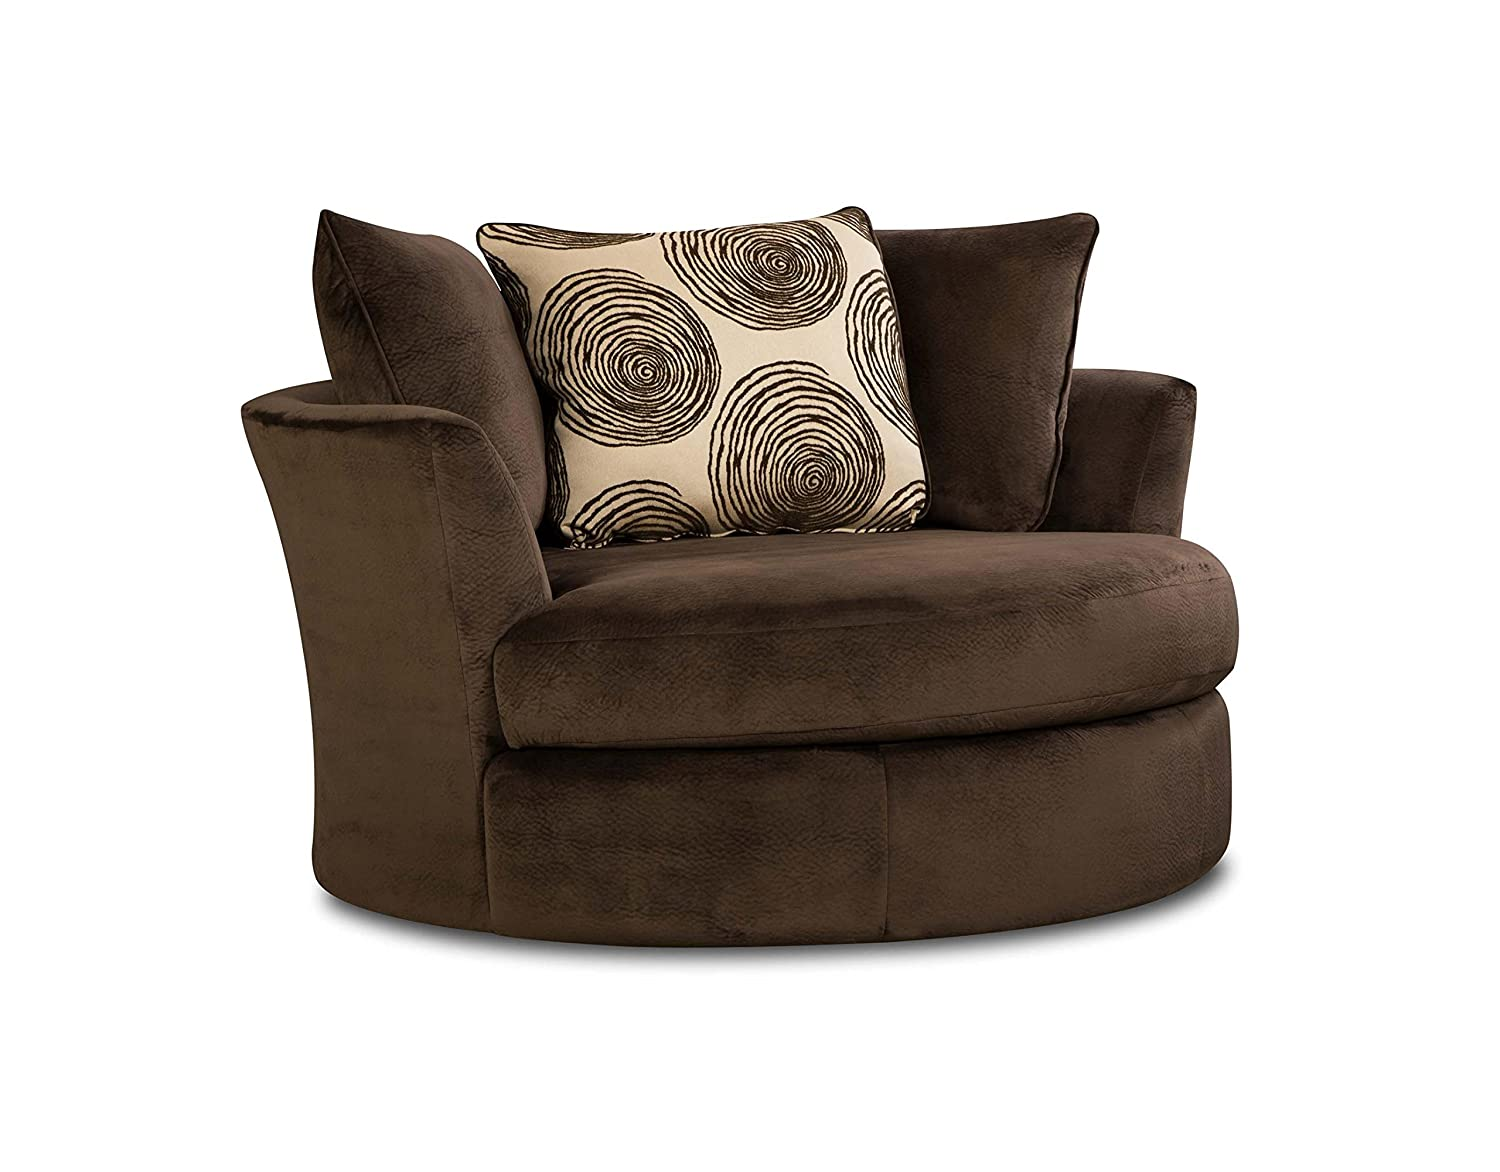 Amazon.com: Chelsea Home Furniture Rayna Swivel Chair, Groovy Chocolate/Big  Swirl Chocolate: Kitchen U0026 Dining